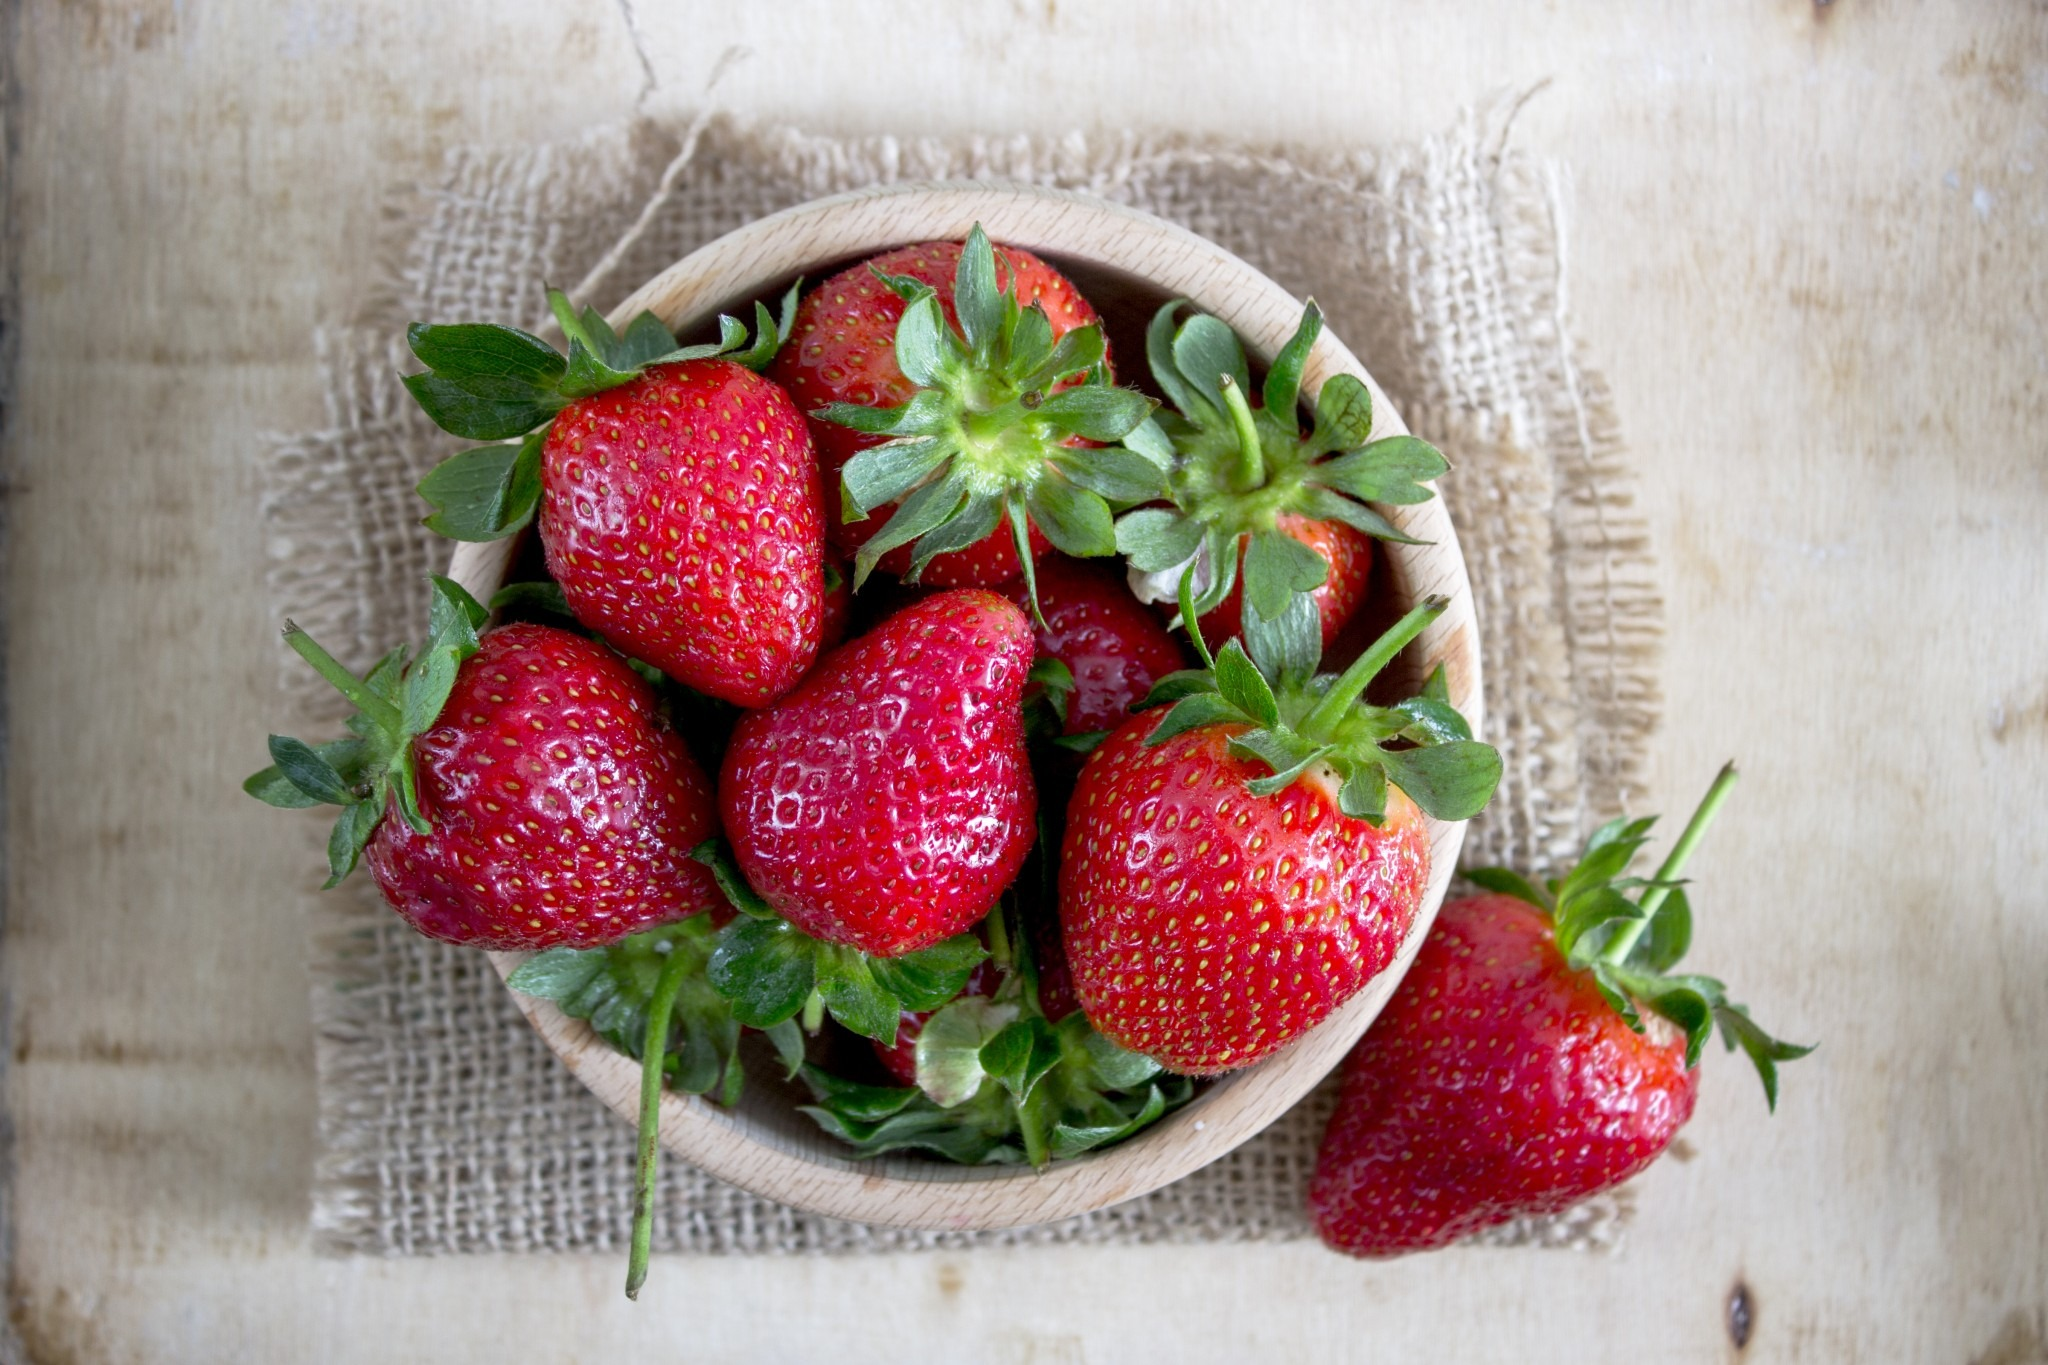 The Problem With Demand For Strawberries